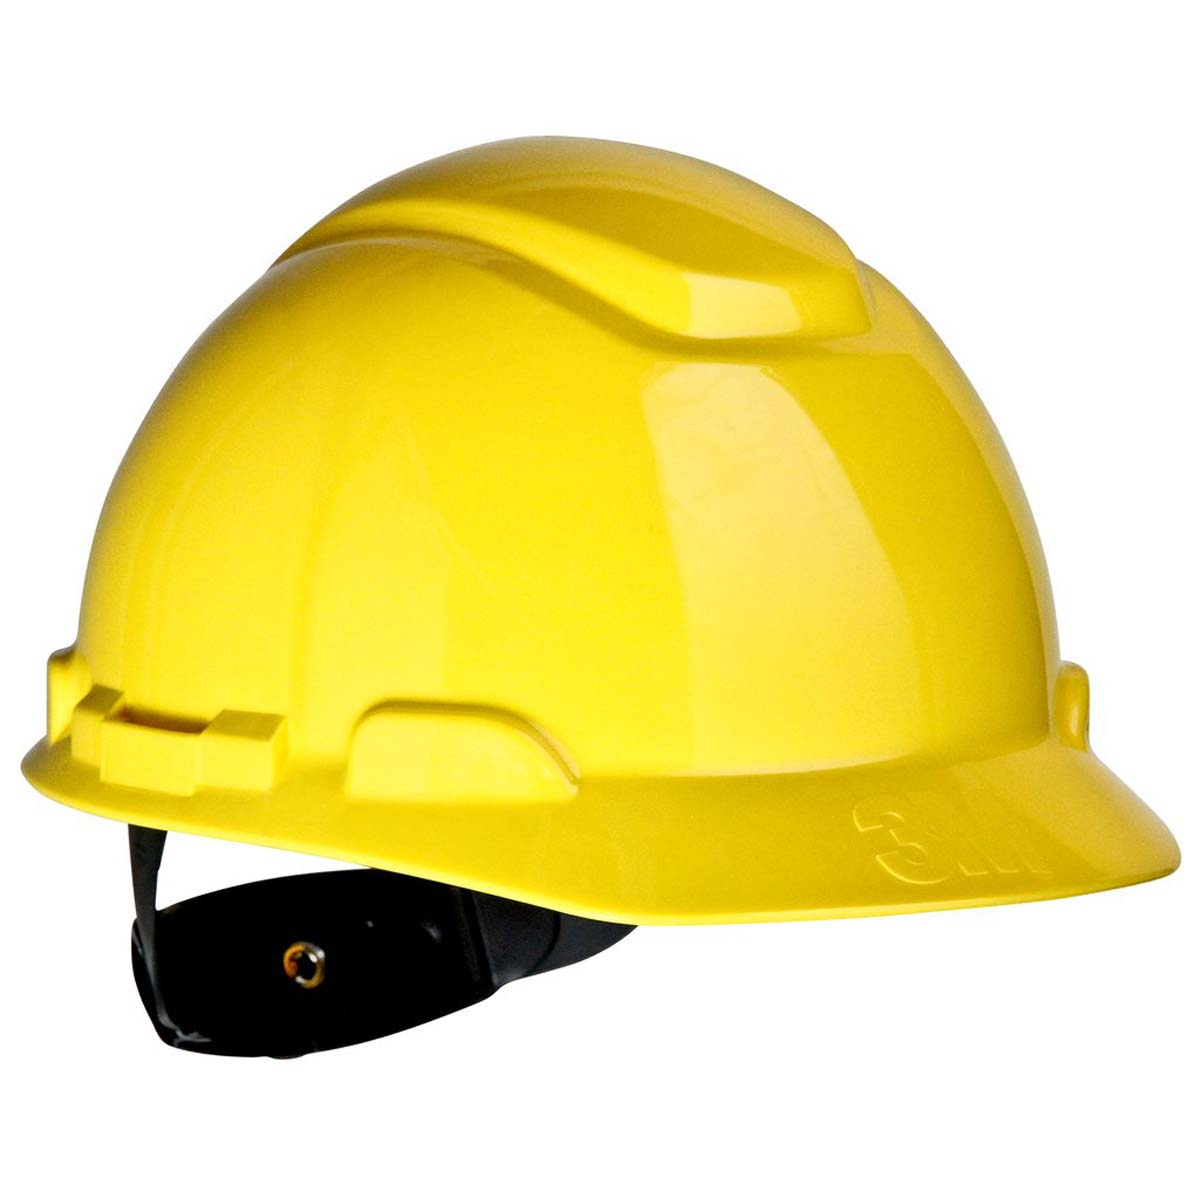 "3Mâ""¢ Hard Hat H-702R, Yellow 4-Point Ratchet Suspension,"